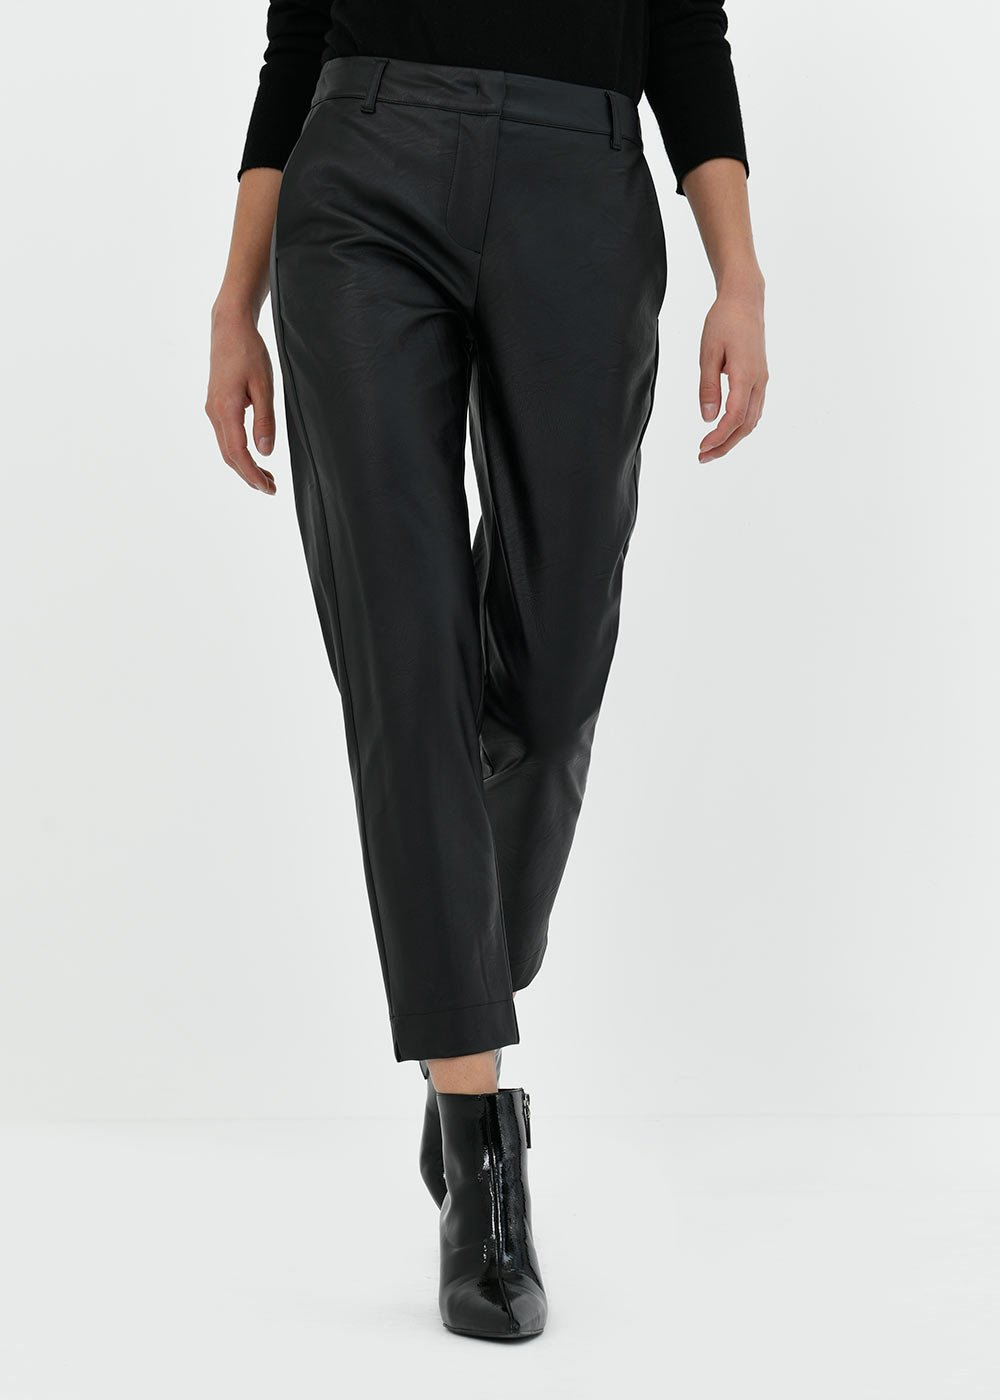 Pantalone Katerun in eco pelle  - Black - Donna